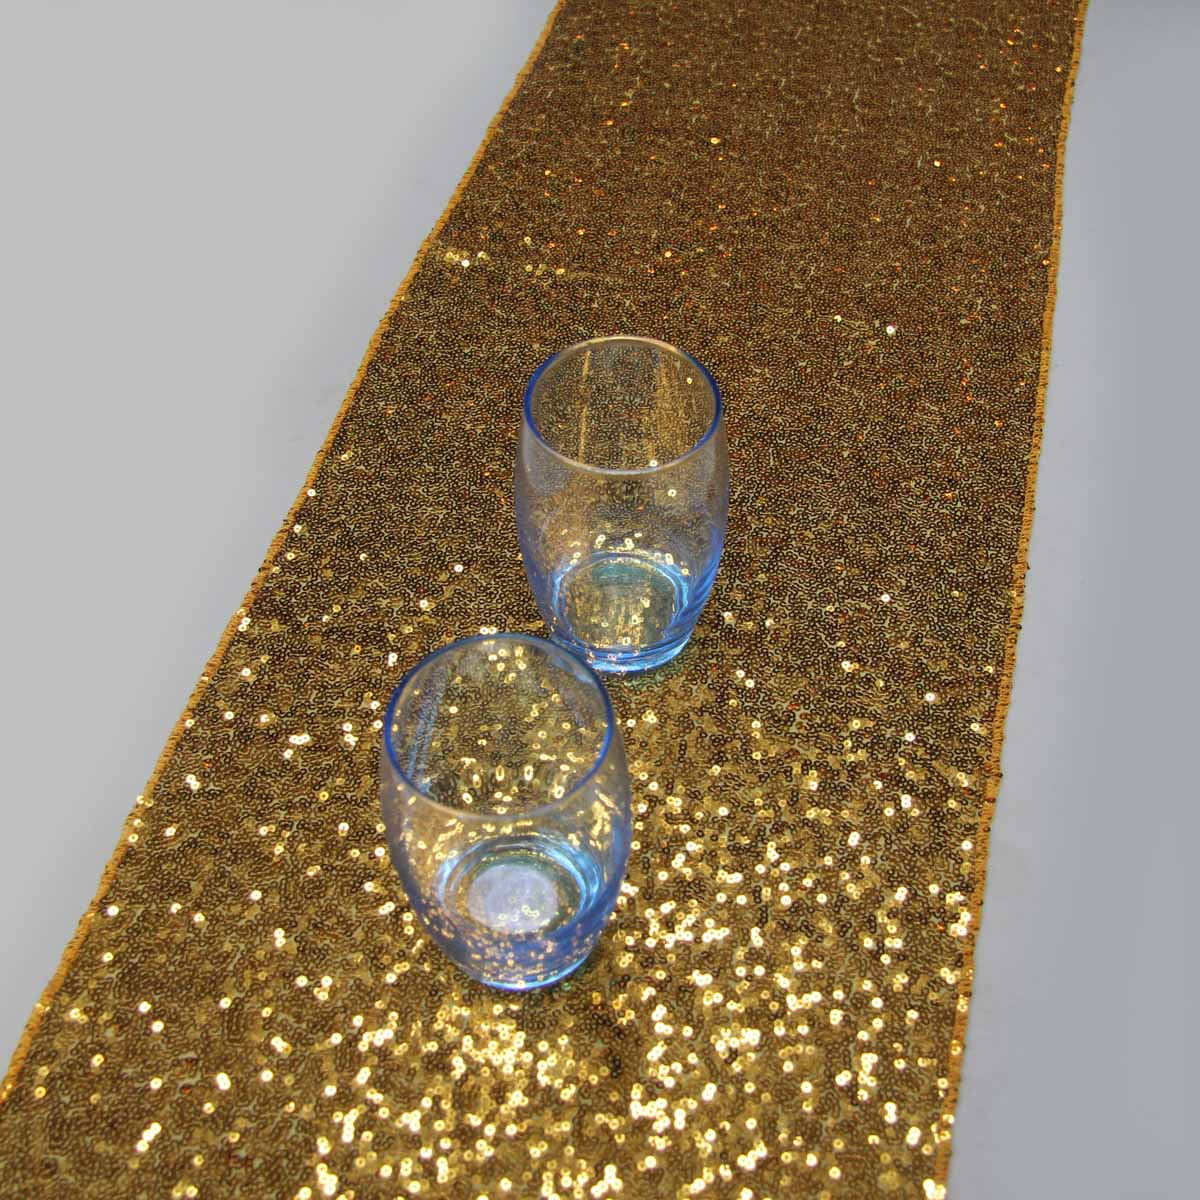 1 Pcs 12 X72 30cmx183cm Luxury Gold Sequin Table Runner Wedding Party Decoration Solid Color Runners In From Home Garden